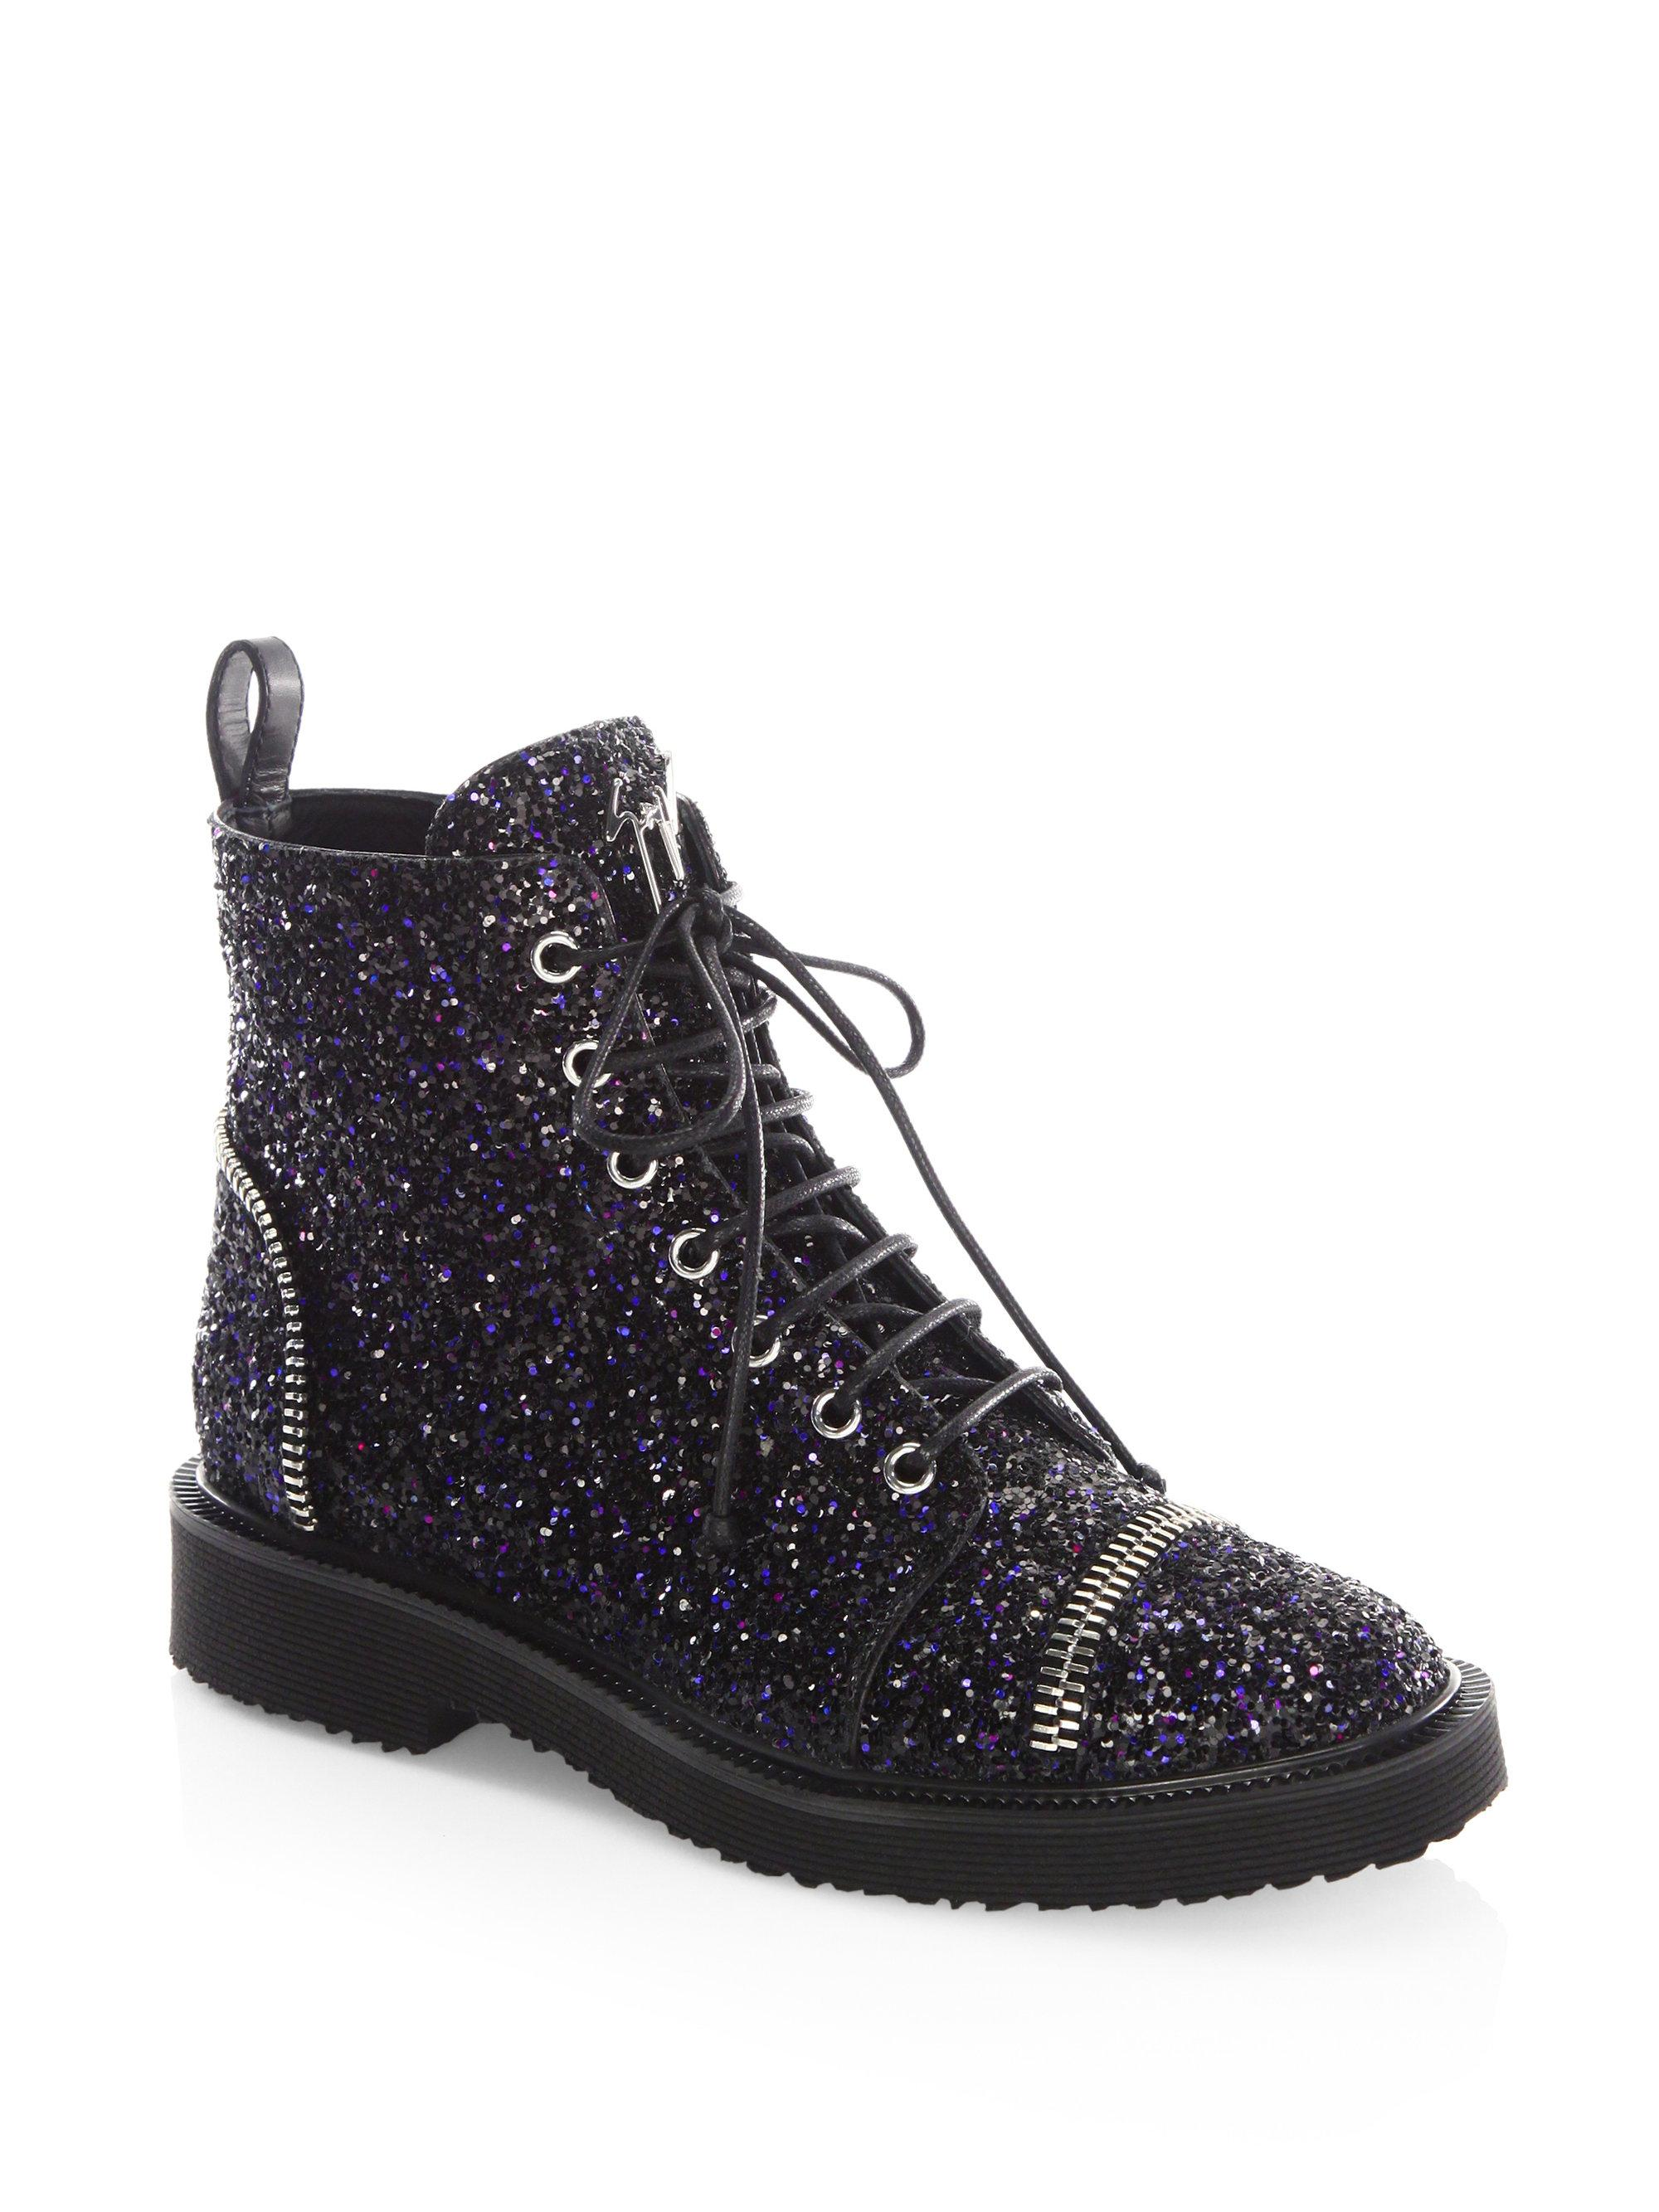 14d4fbd086e21 Gallery. Previously sold at: Saks Fifth Avenue · Women's Combat Boots